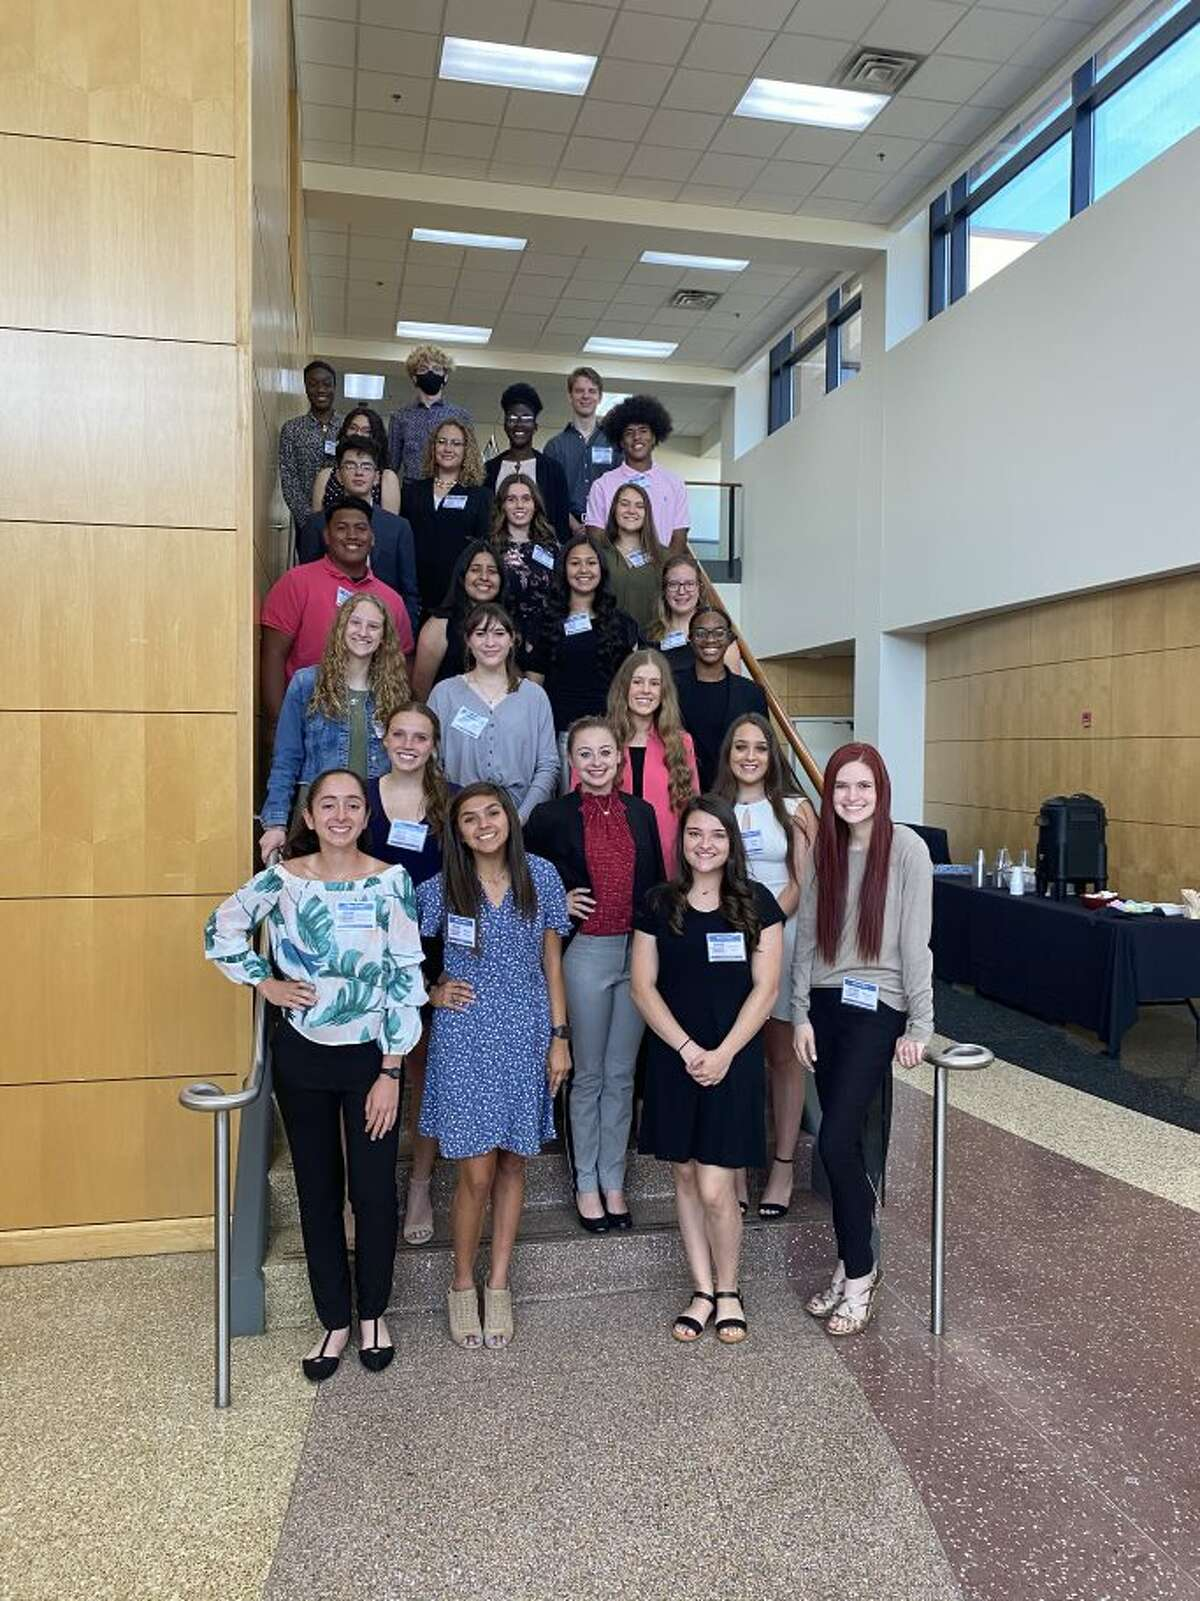 Midland Young Leaders participants